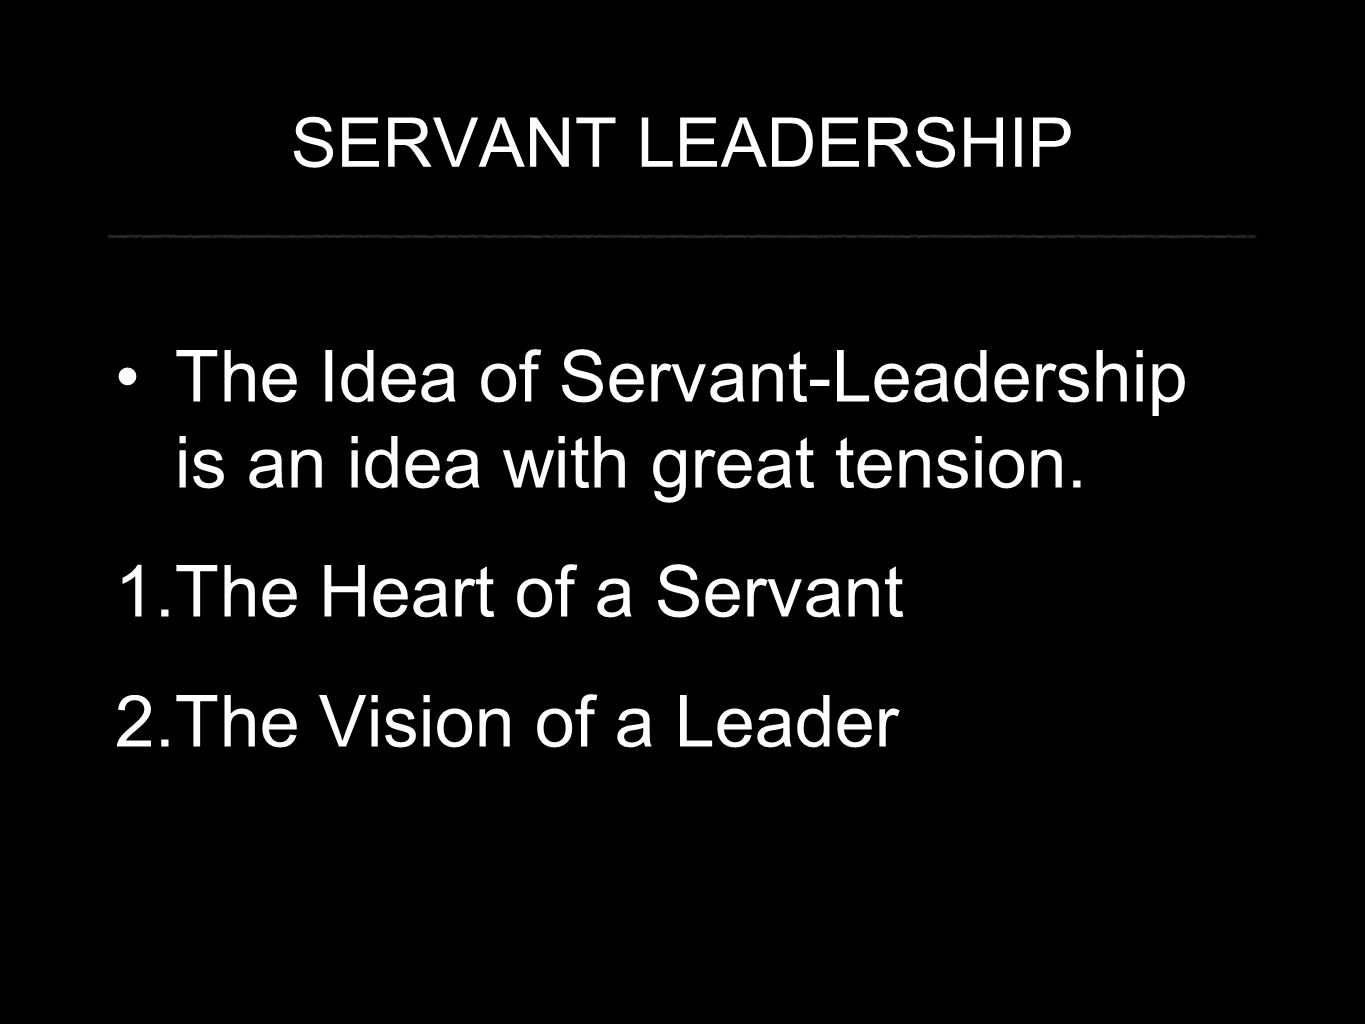 SERVANT LEADERSHIP The Idea of Servant-Leadership is an idea with great tension.